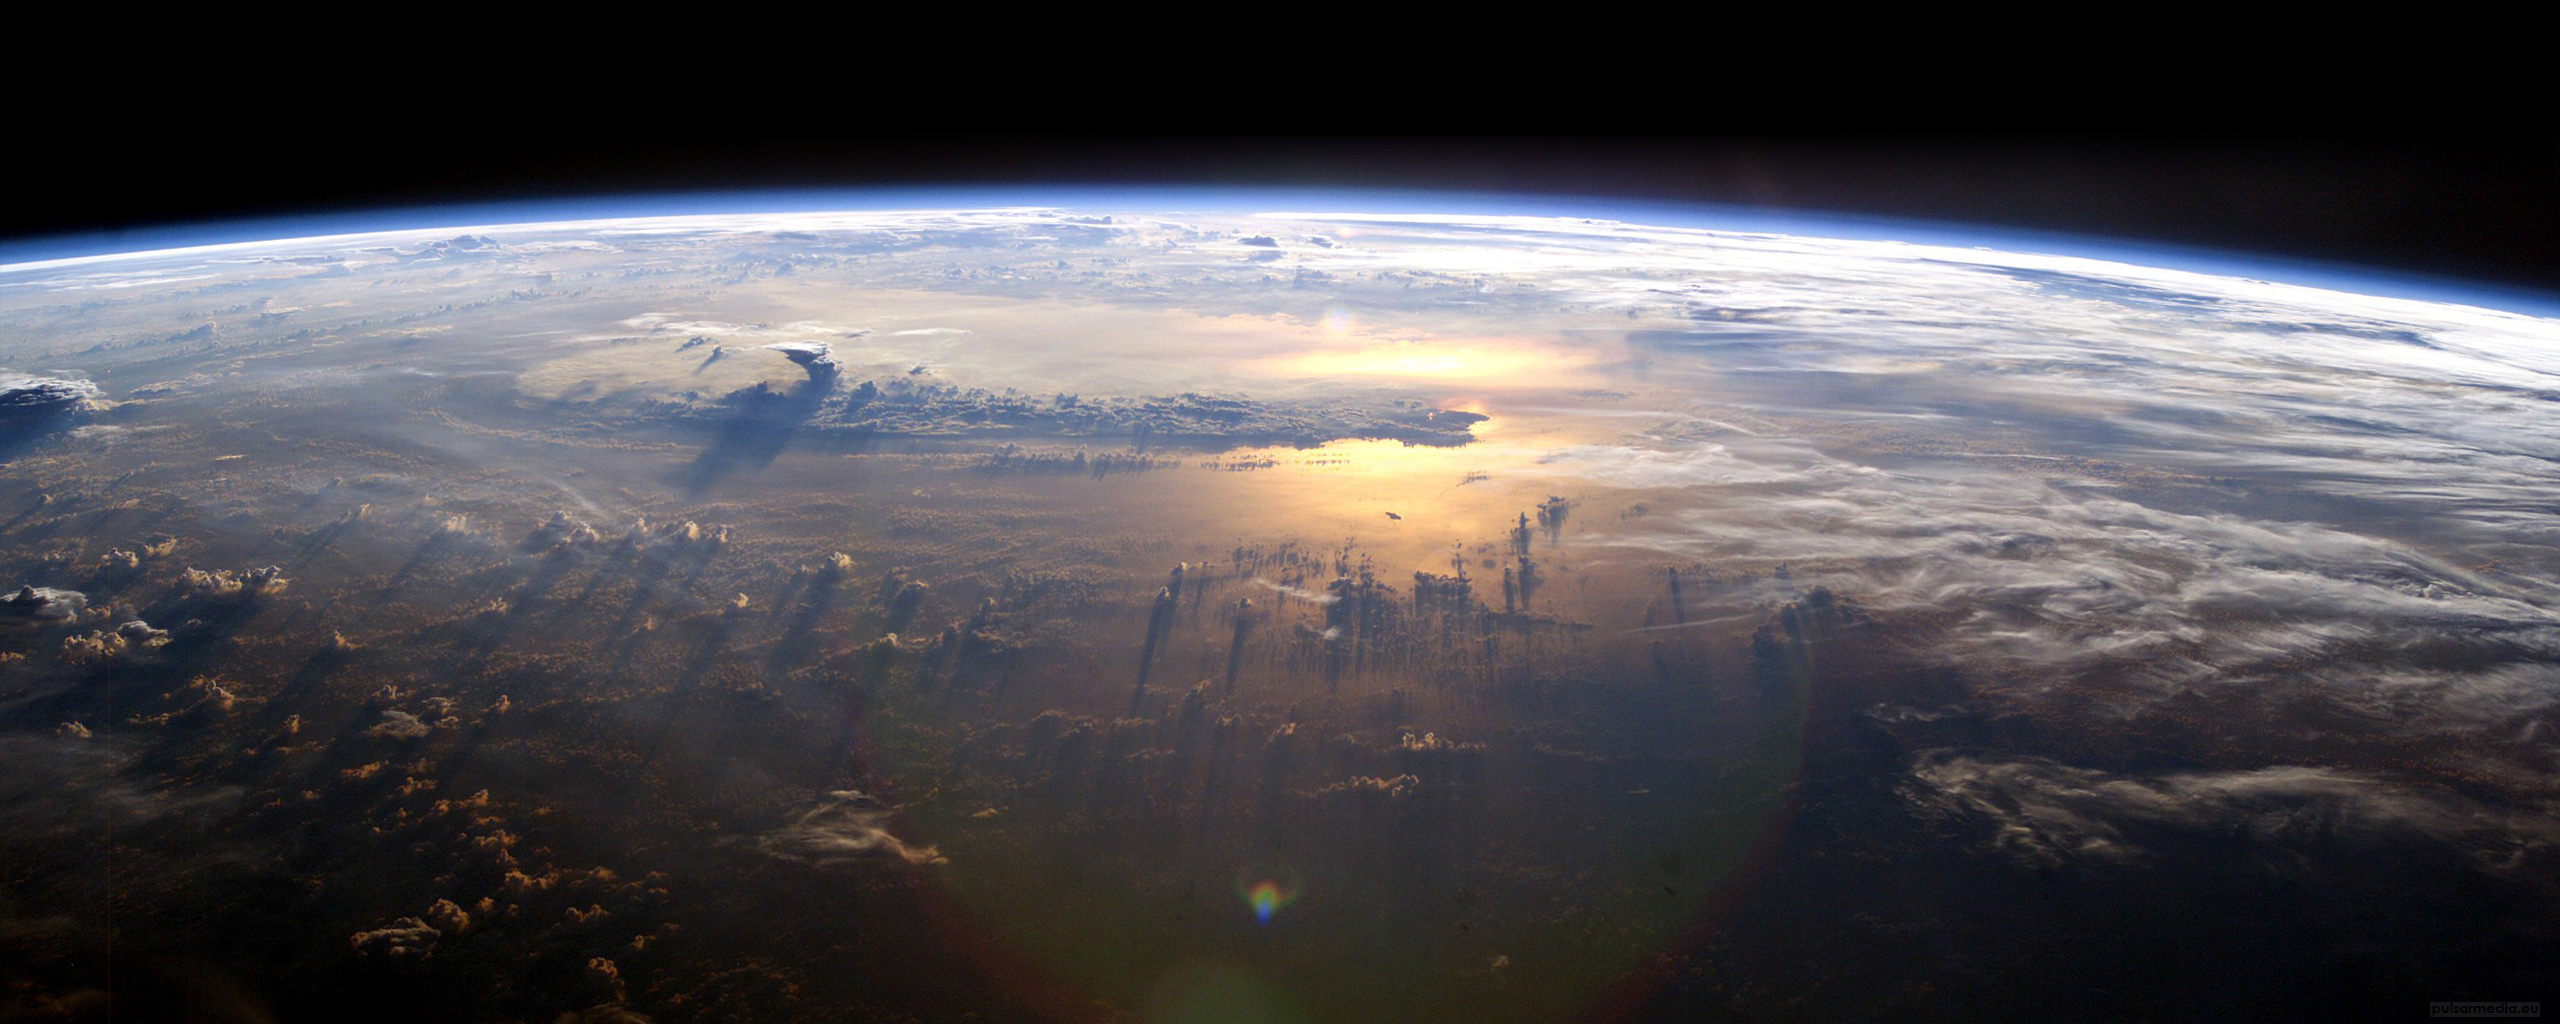 Dual Screen Wallpaper   Earth From Space 2560x1024 Dual Screen 2560x1024